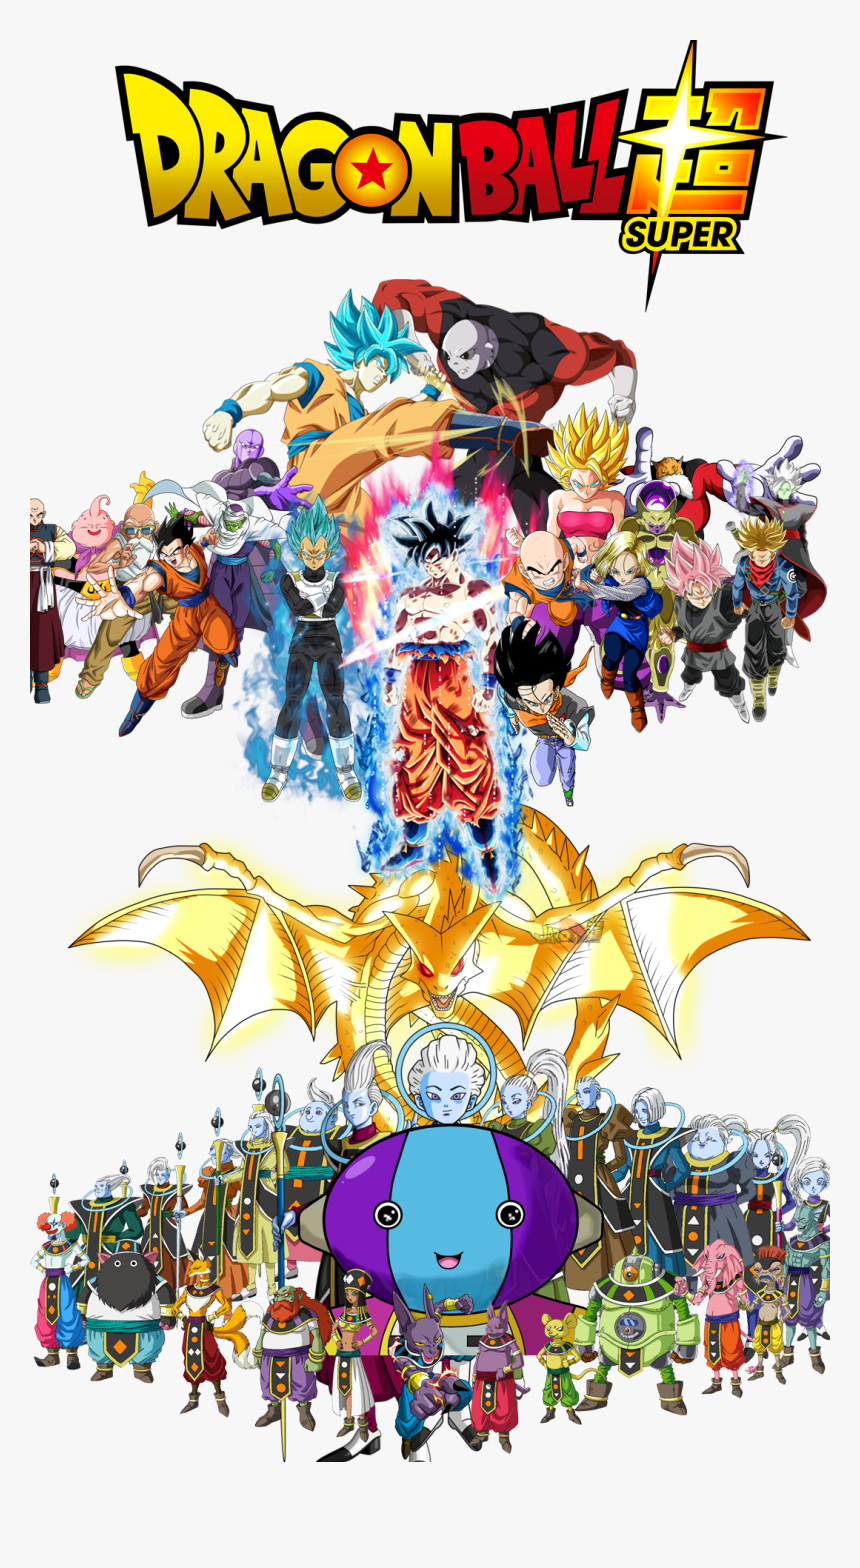 Free Png Download Dragon Ball Super Png Images Background Dragon